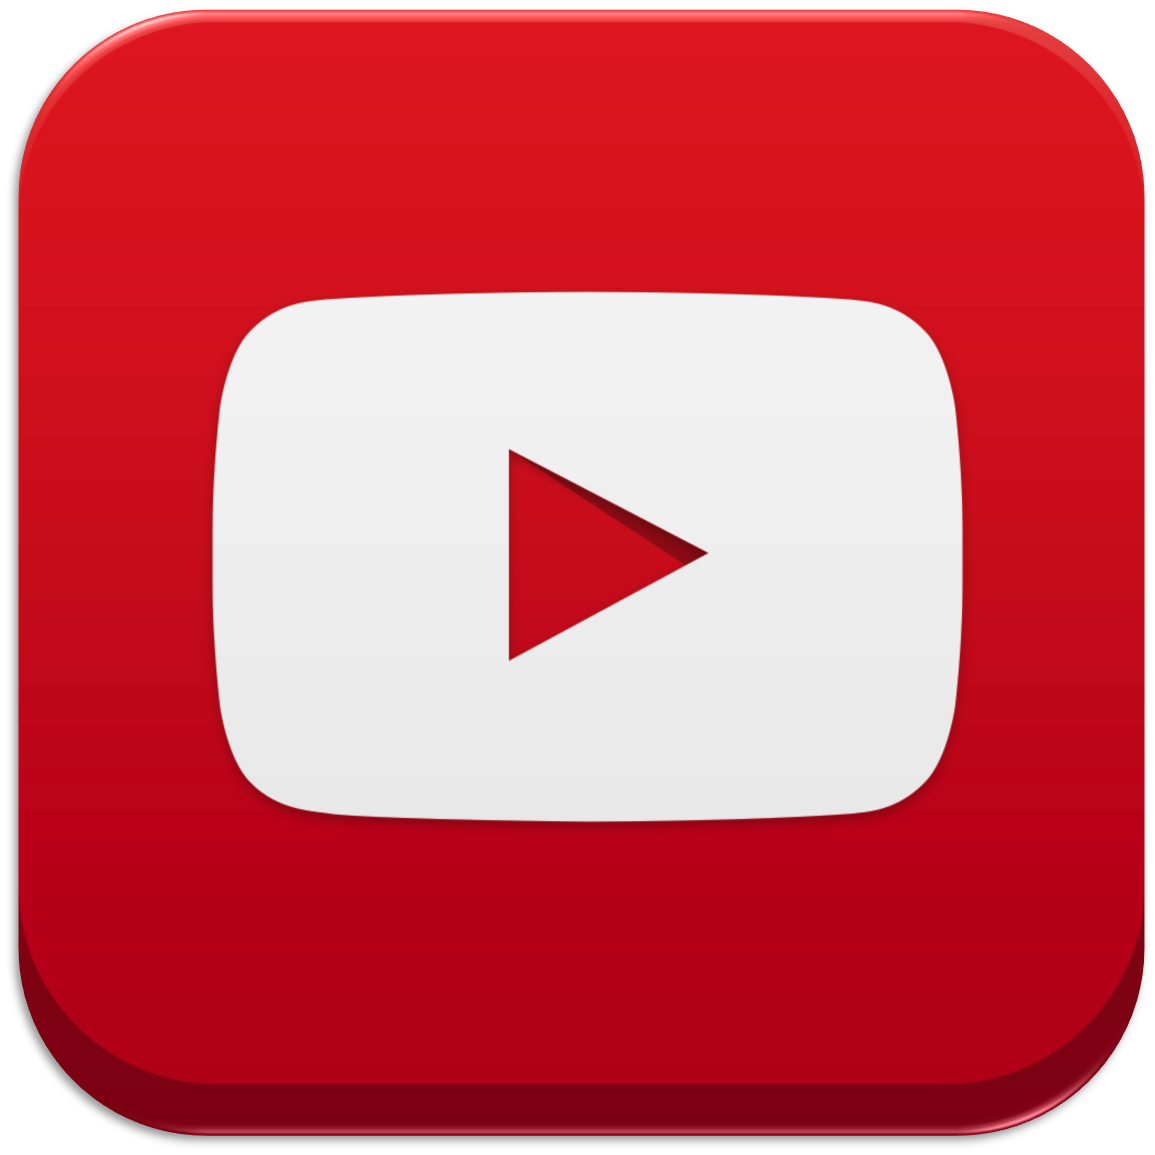 Showing Gallery For Youtube Subscribe Button TransparentYoutube Button Transparent